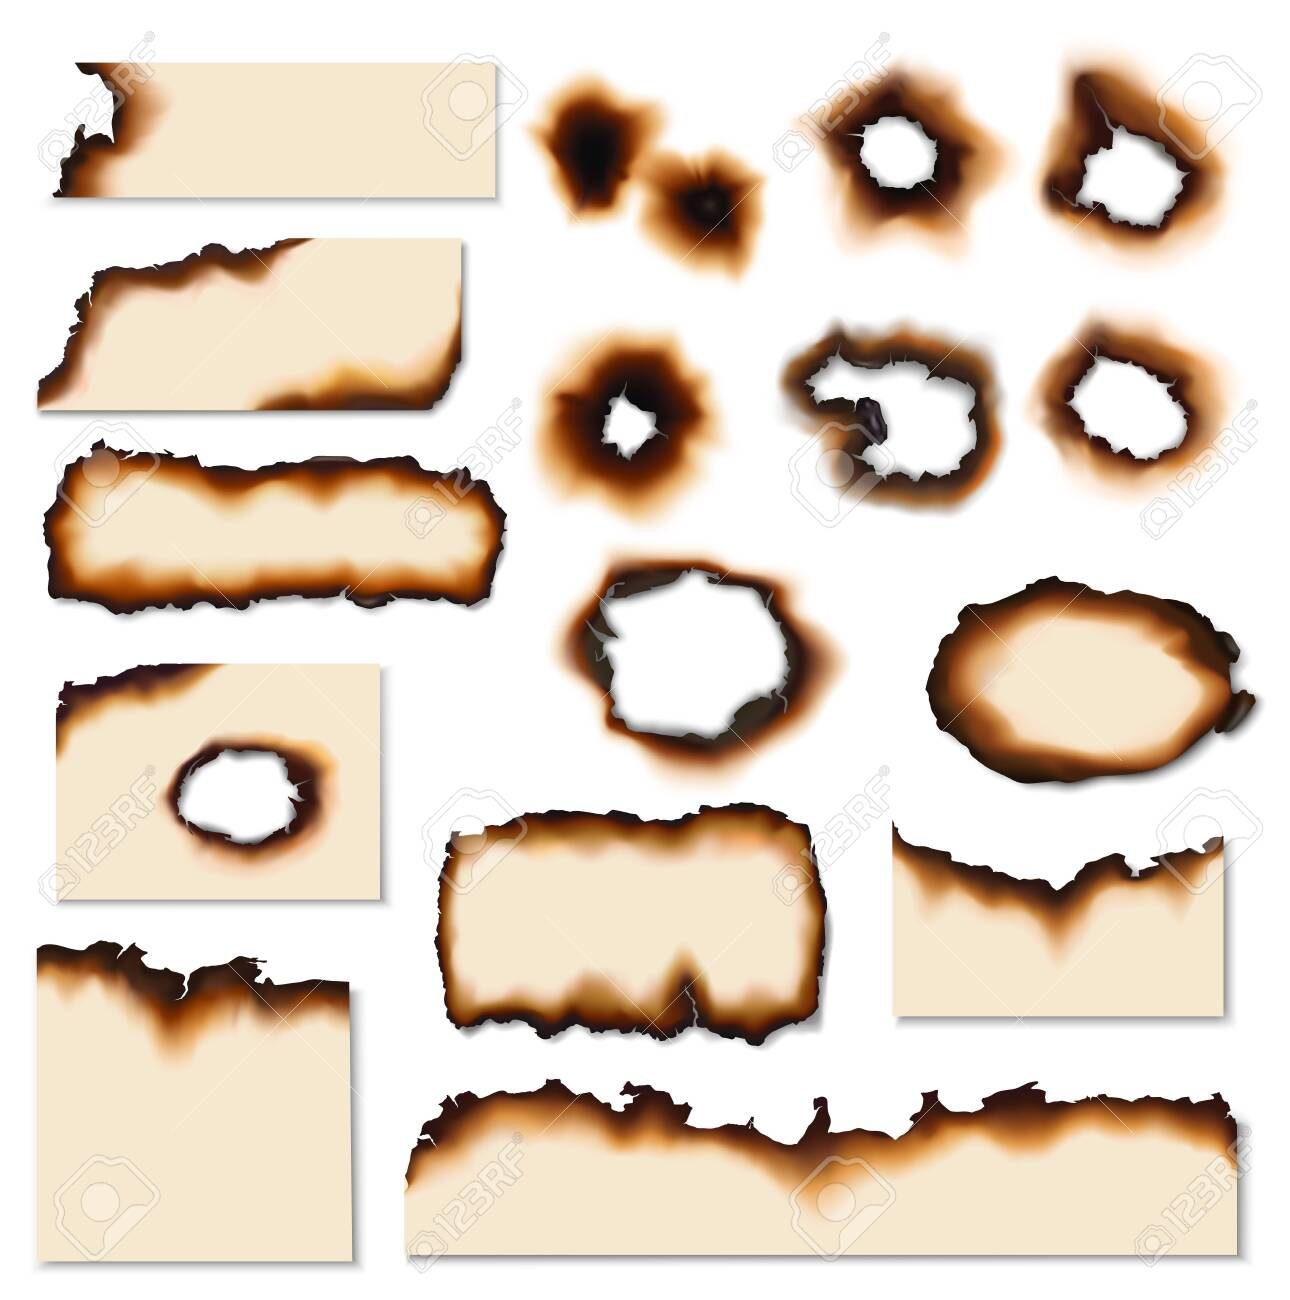 Paper burnt holes vector realistic set. Paper pages and sheet scraps with fire burned or scorched edges, sides and holes - 124517758